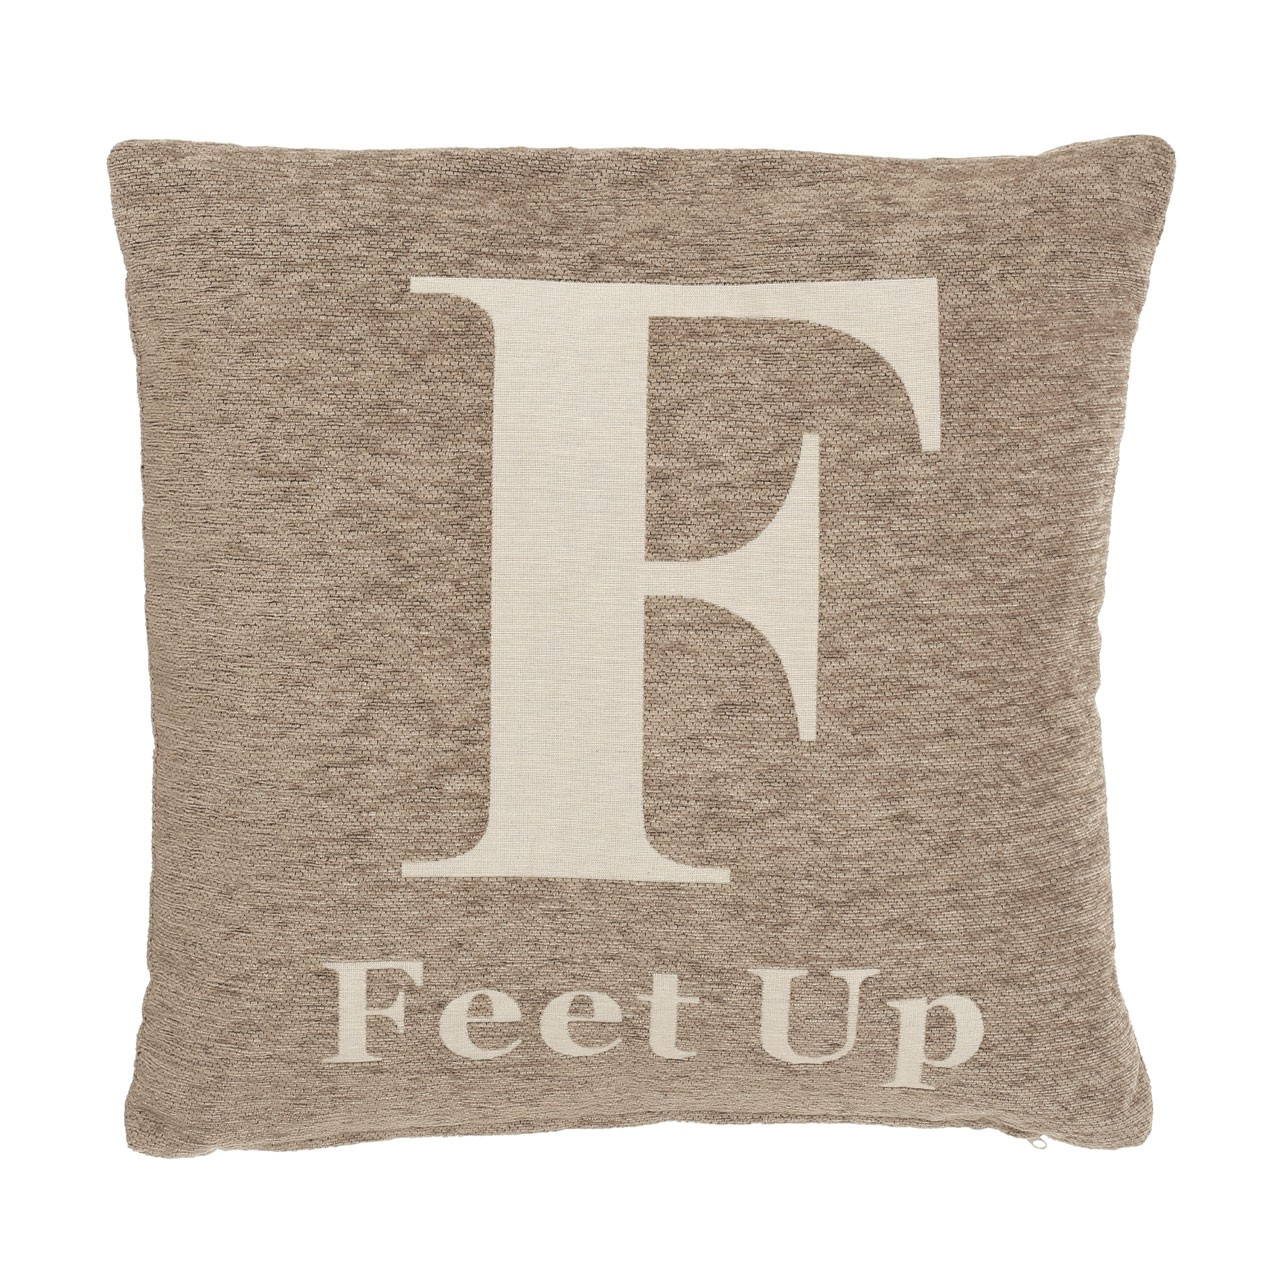 "Prime Furnishing ""Feet Up"" Chenille Cushion - Natural"